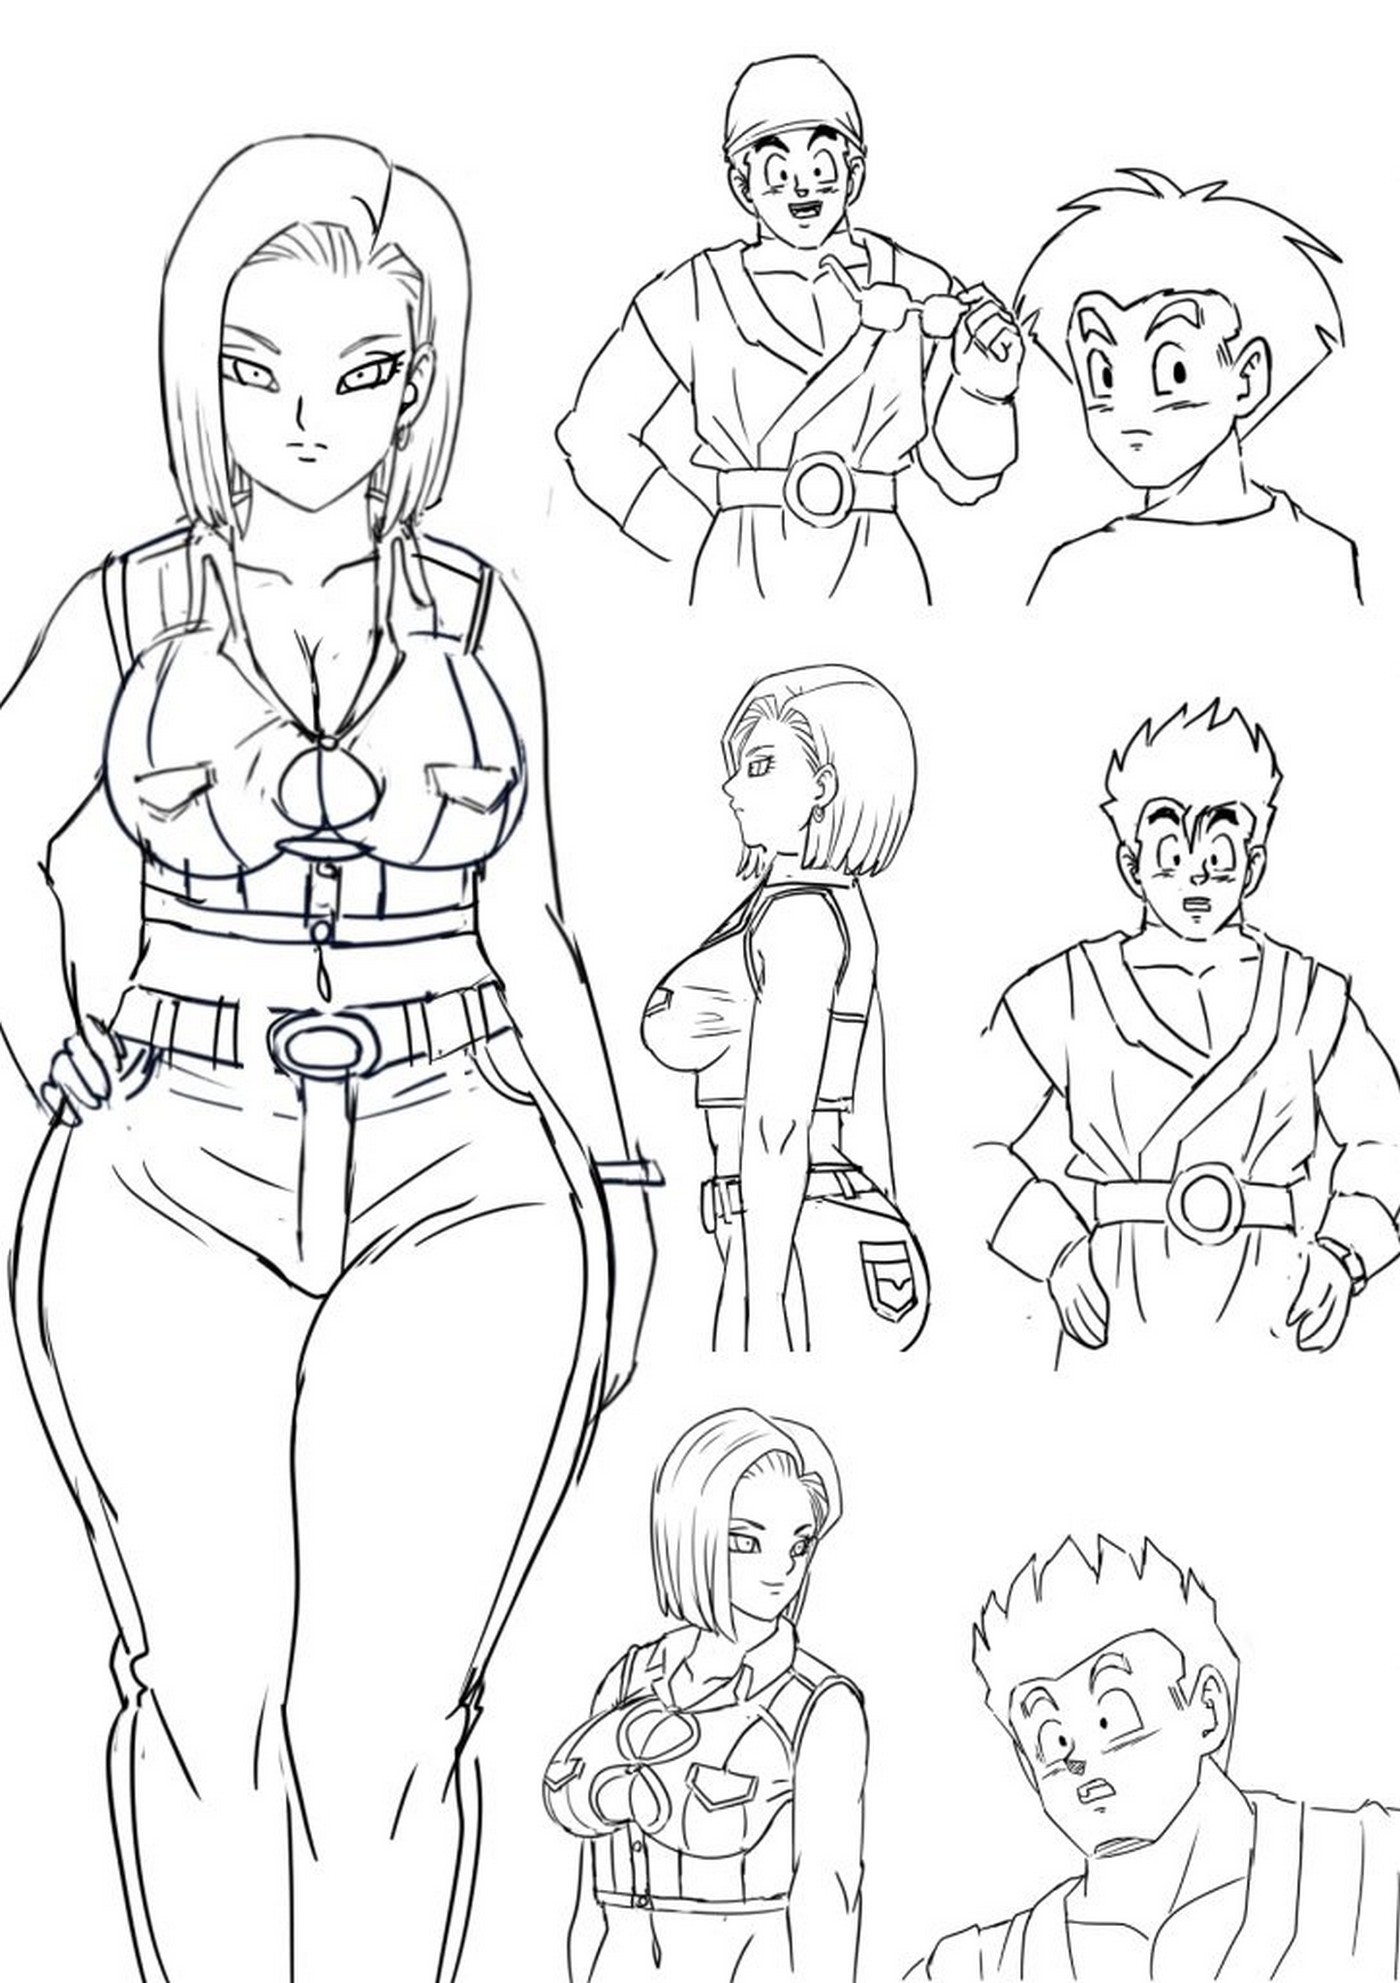 Android Ntr 18 Ep 3 Pink Pawg 06